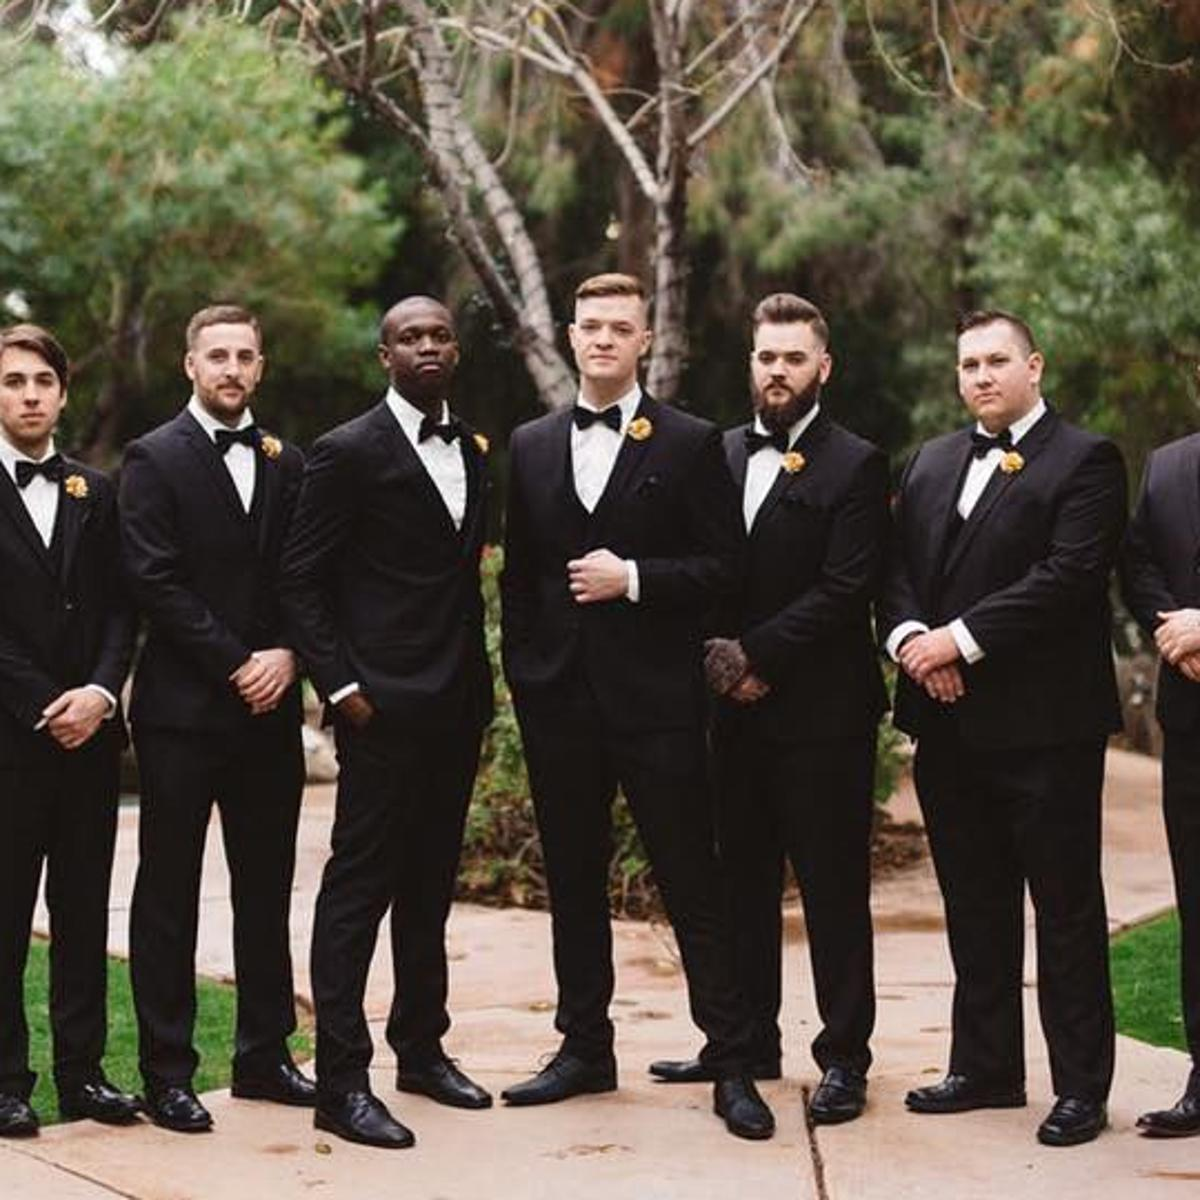 Win a free suit for your groom and his groomsmen | Tucson